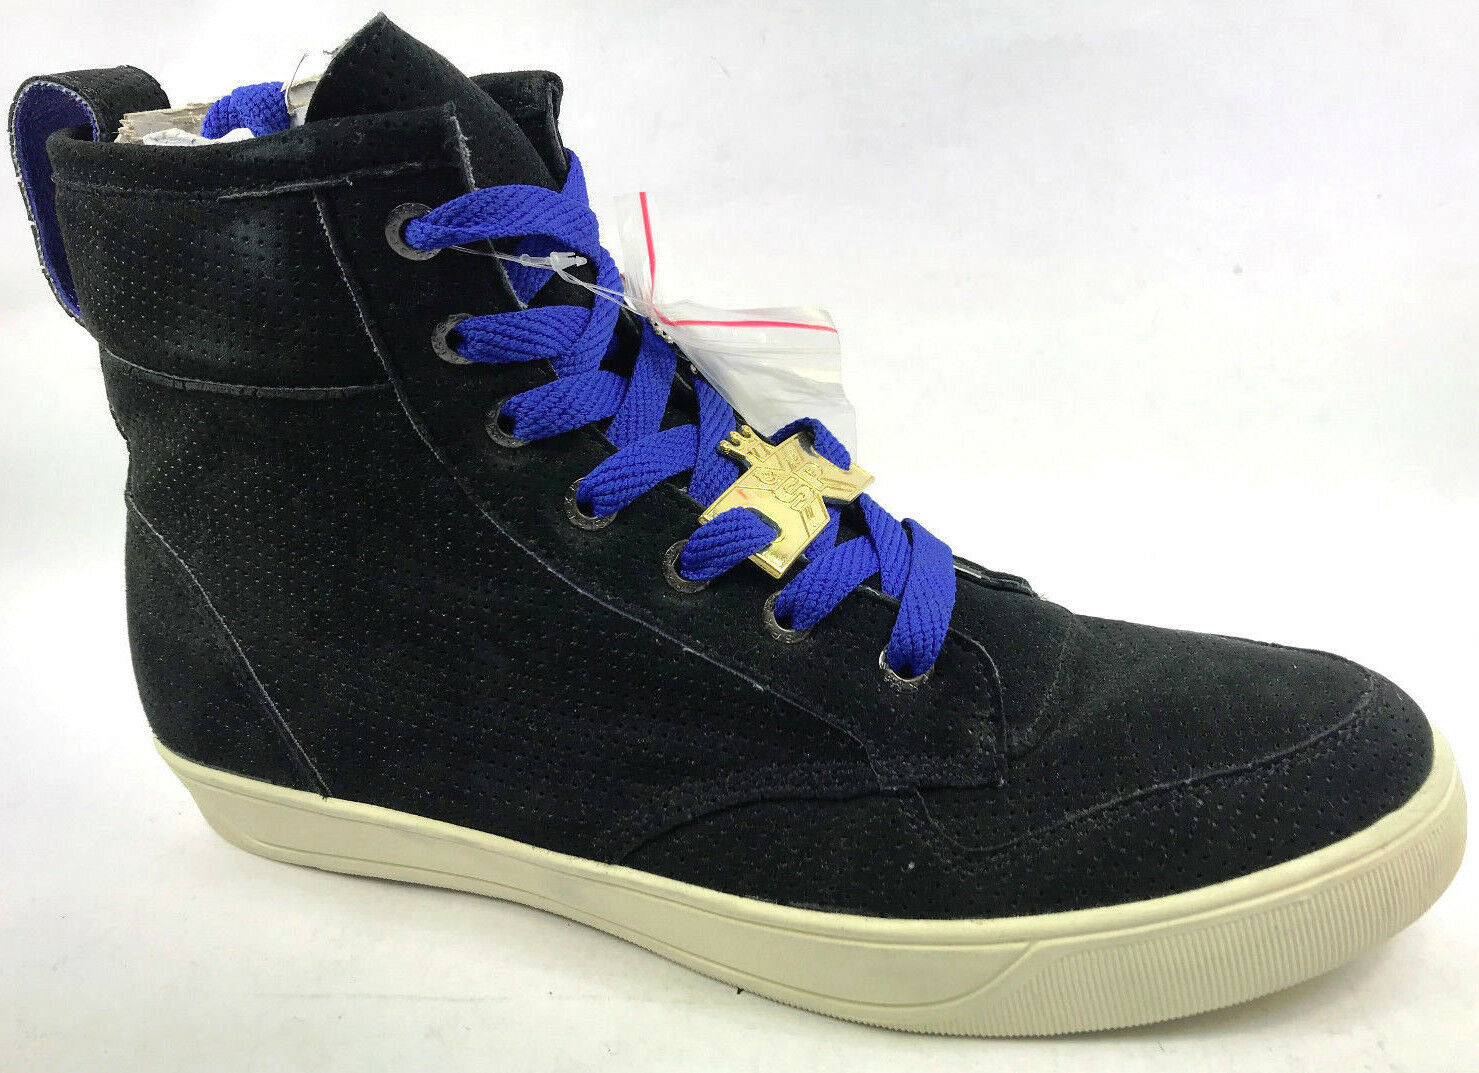 SPX Boots Street Classic-HI Great Look Hand Made. NEW Size 9, 9 1 2, 10 1 2. 12